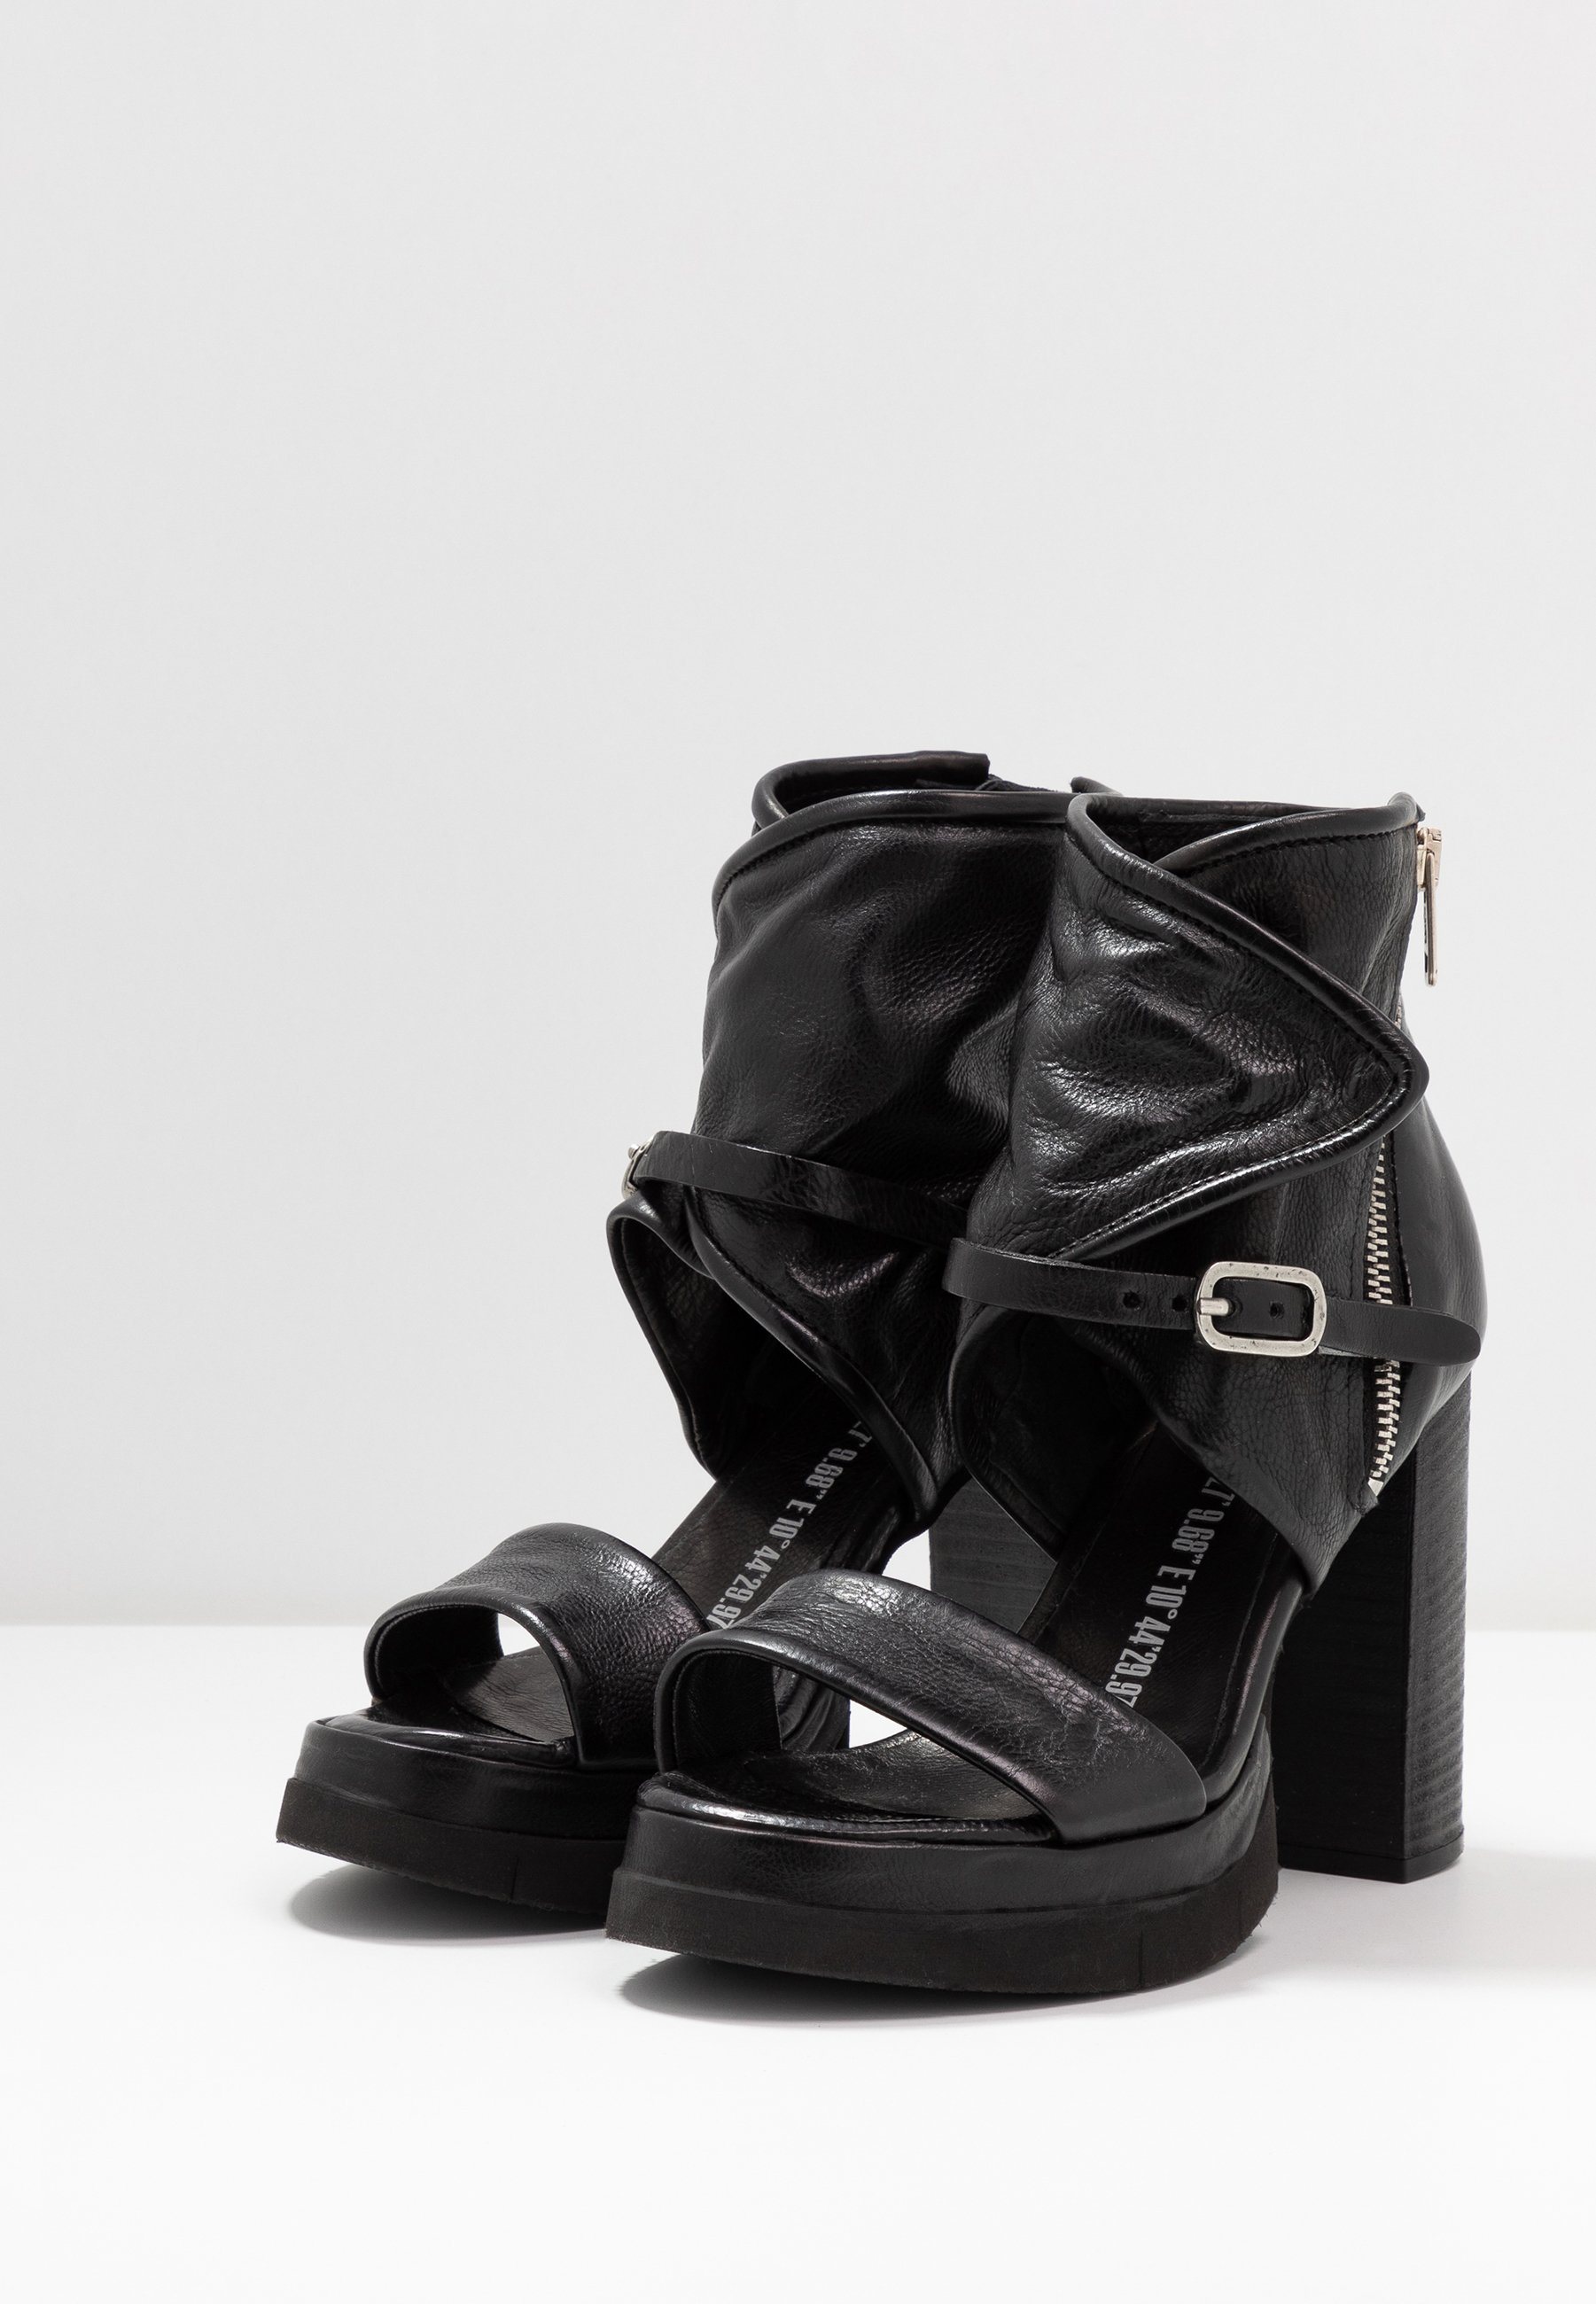 A.s.98 High Heeled Sandals - Nero